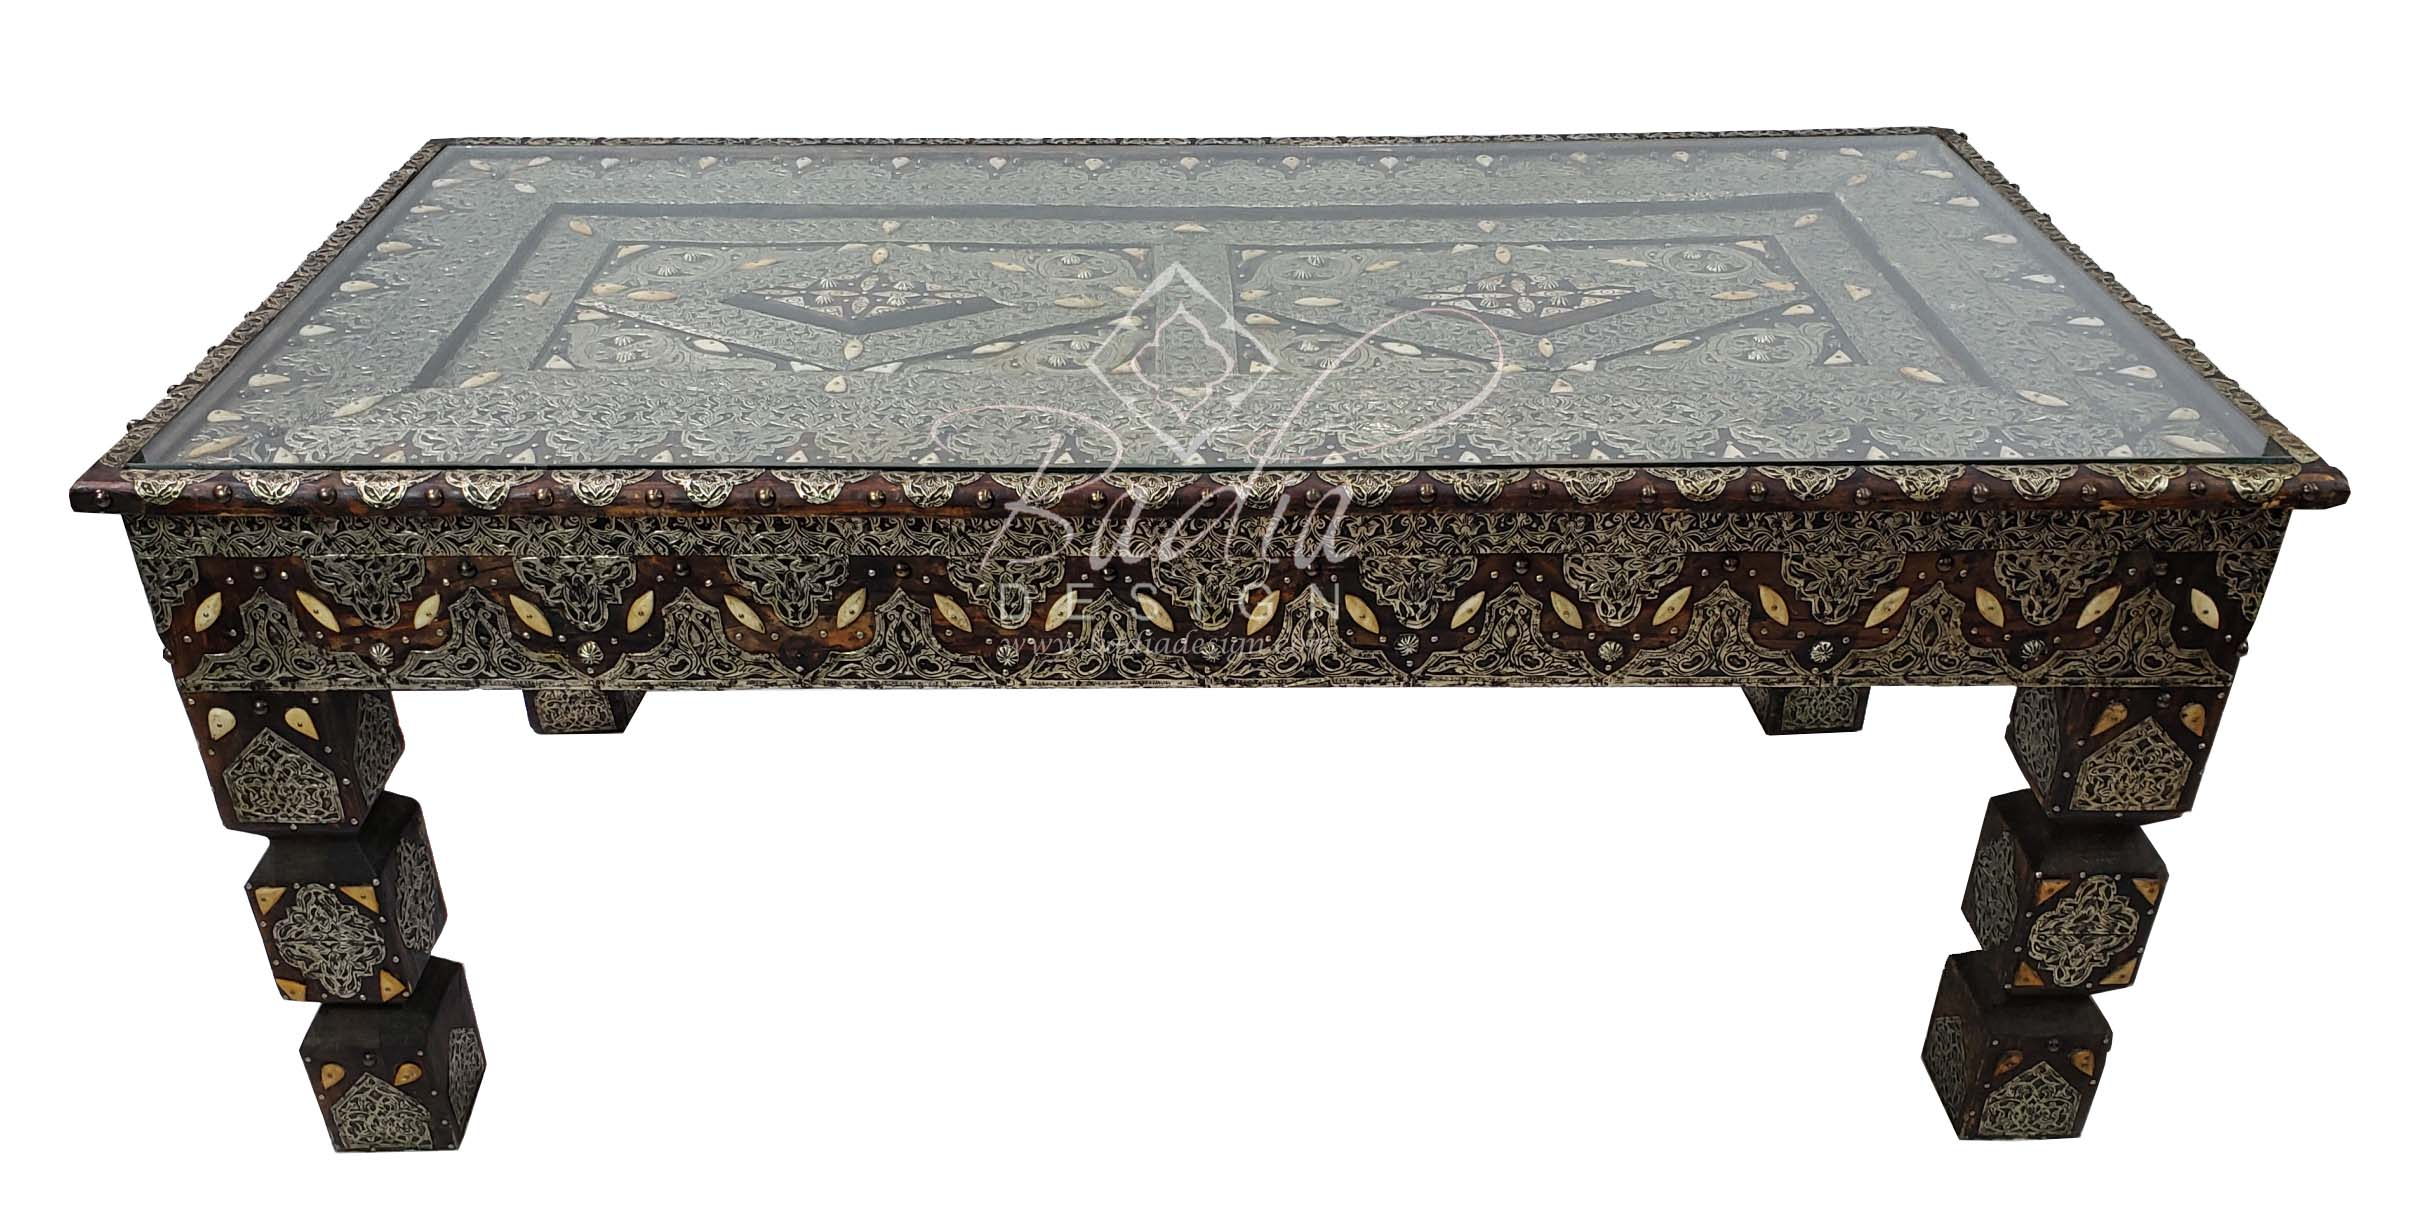 moroccan-metal-and-bone-coffee-table-mb-ct018.jpg